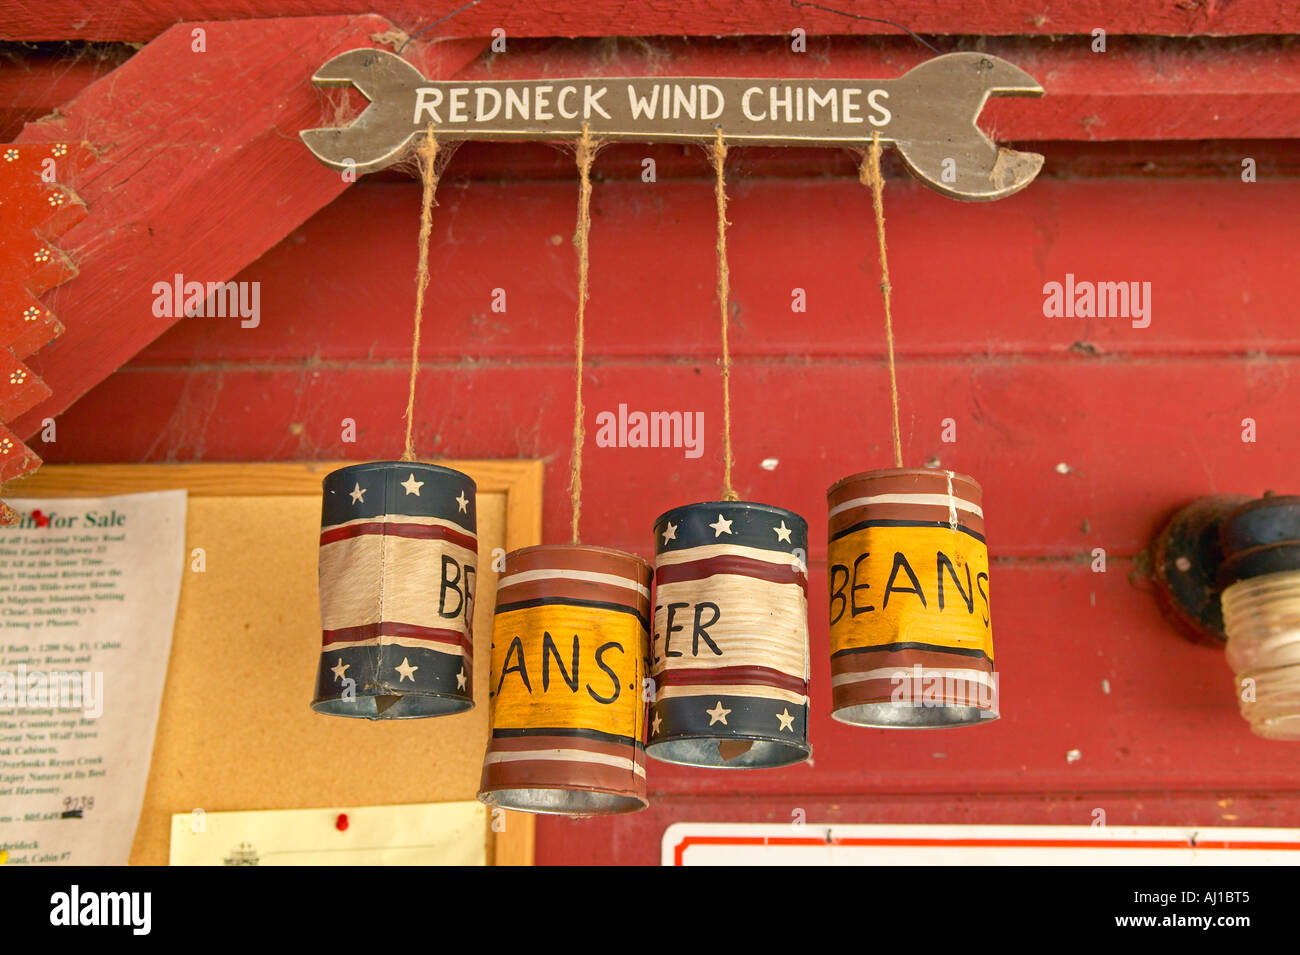 Kitschy wind chimes made of tin cans - Stock Image